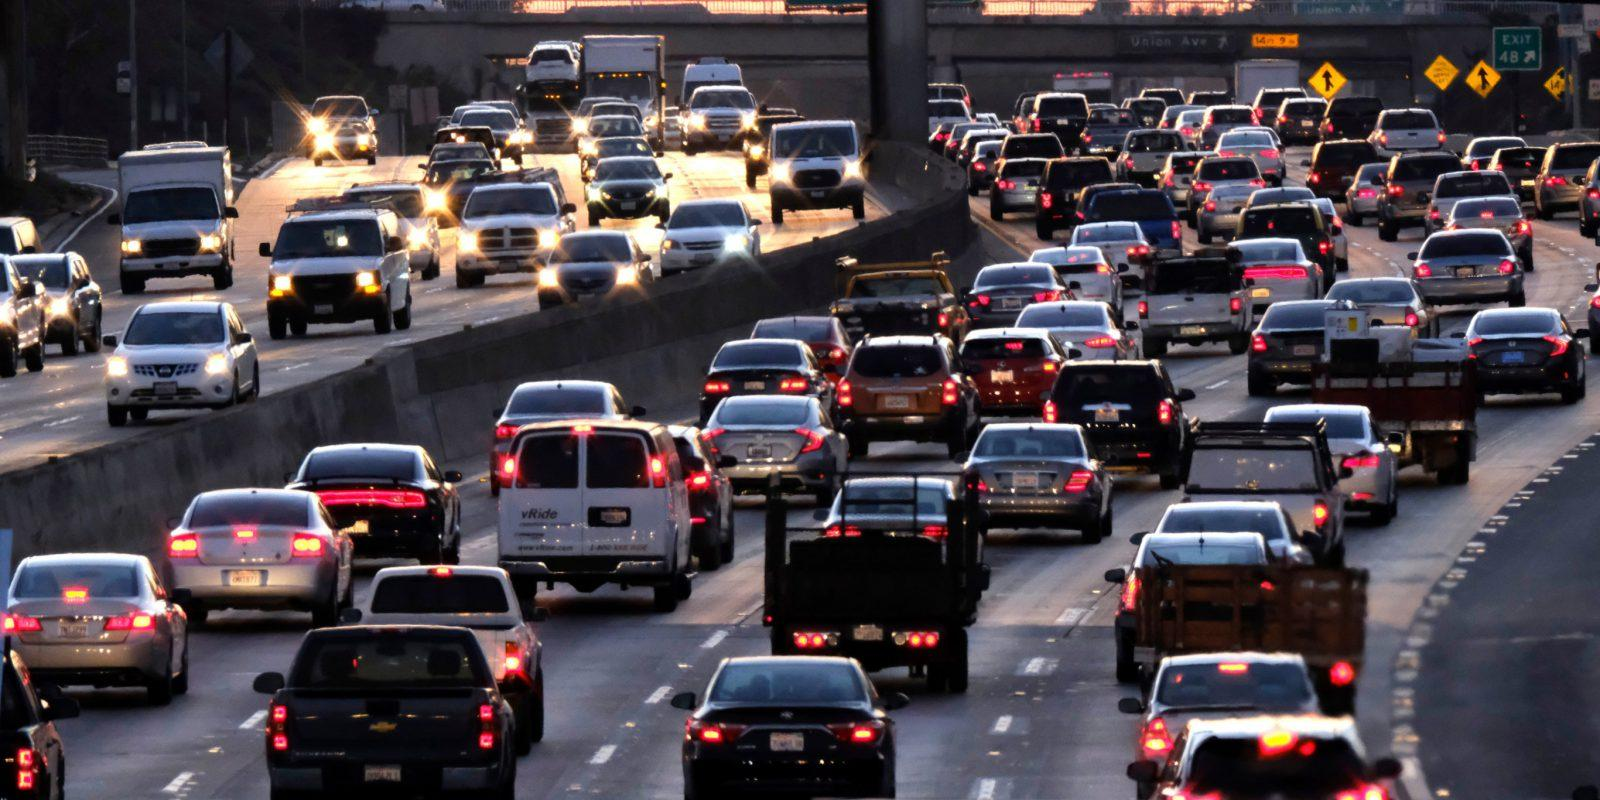 Your CITIES WITH THE WORST TRAFFIC Again